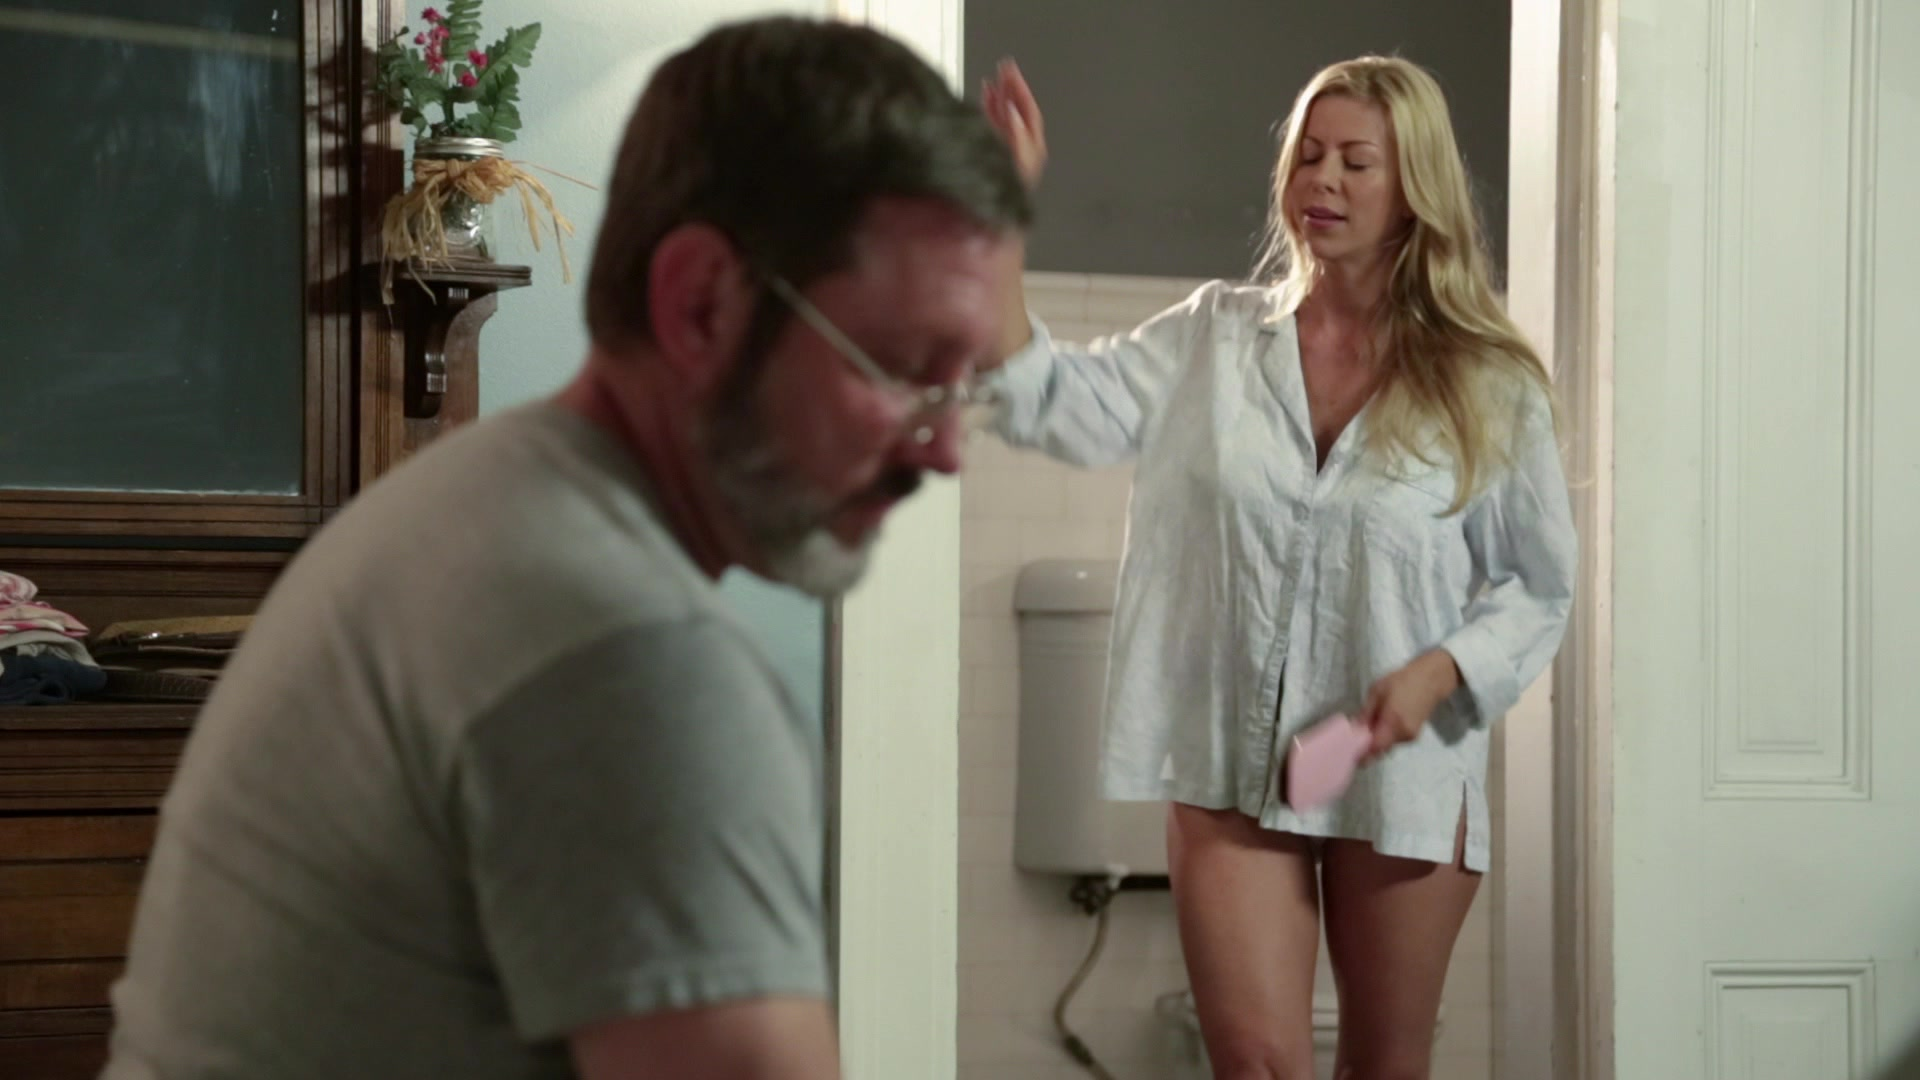 Scene with Brad Armstrong and Alexis Fawx - image 4 out of 20